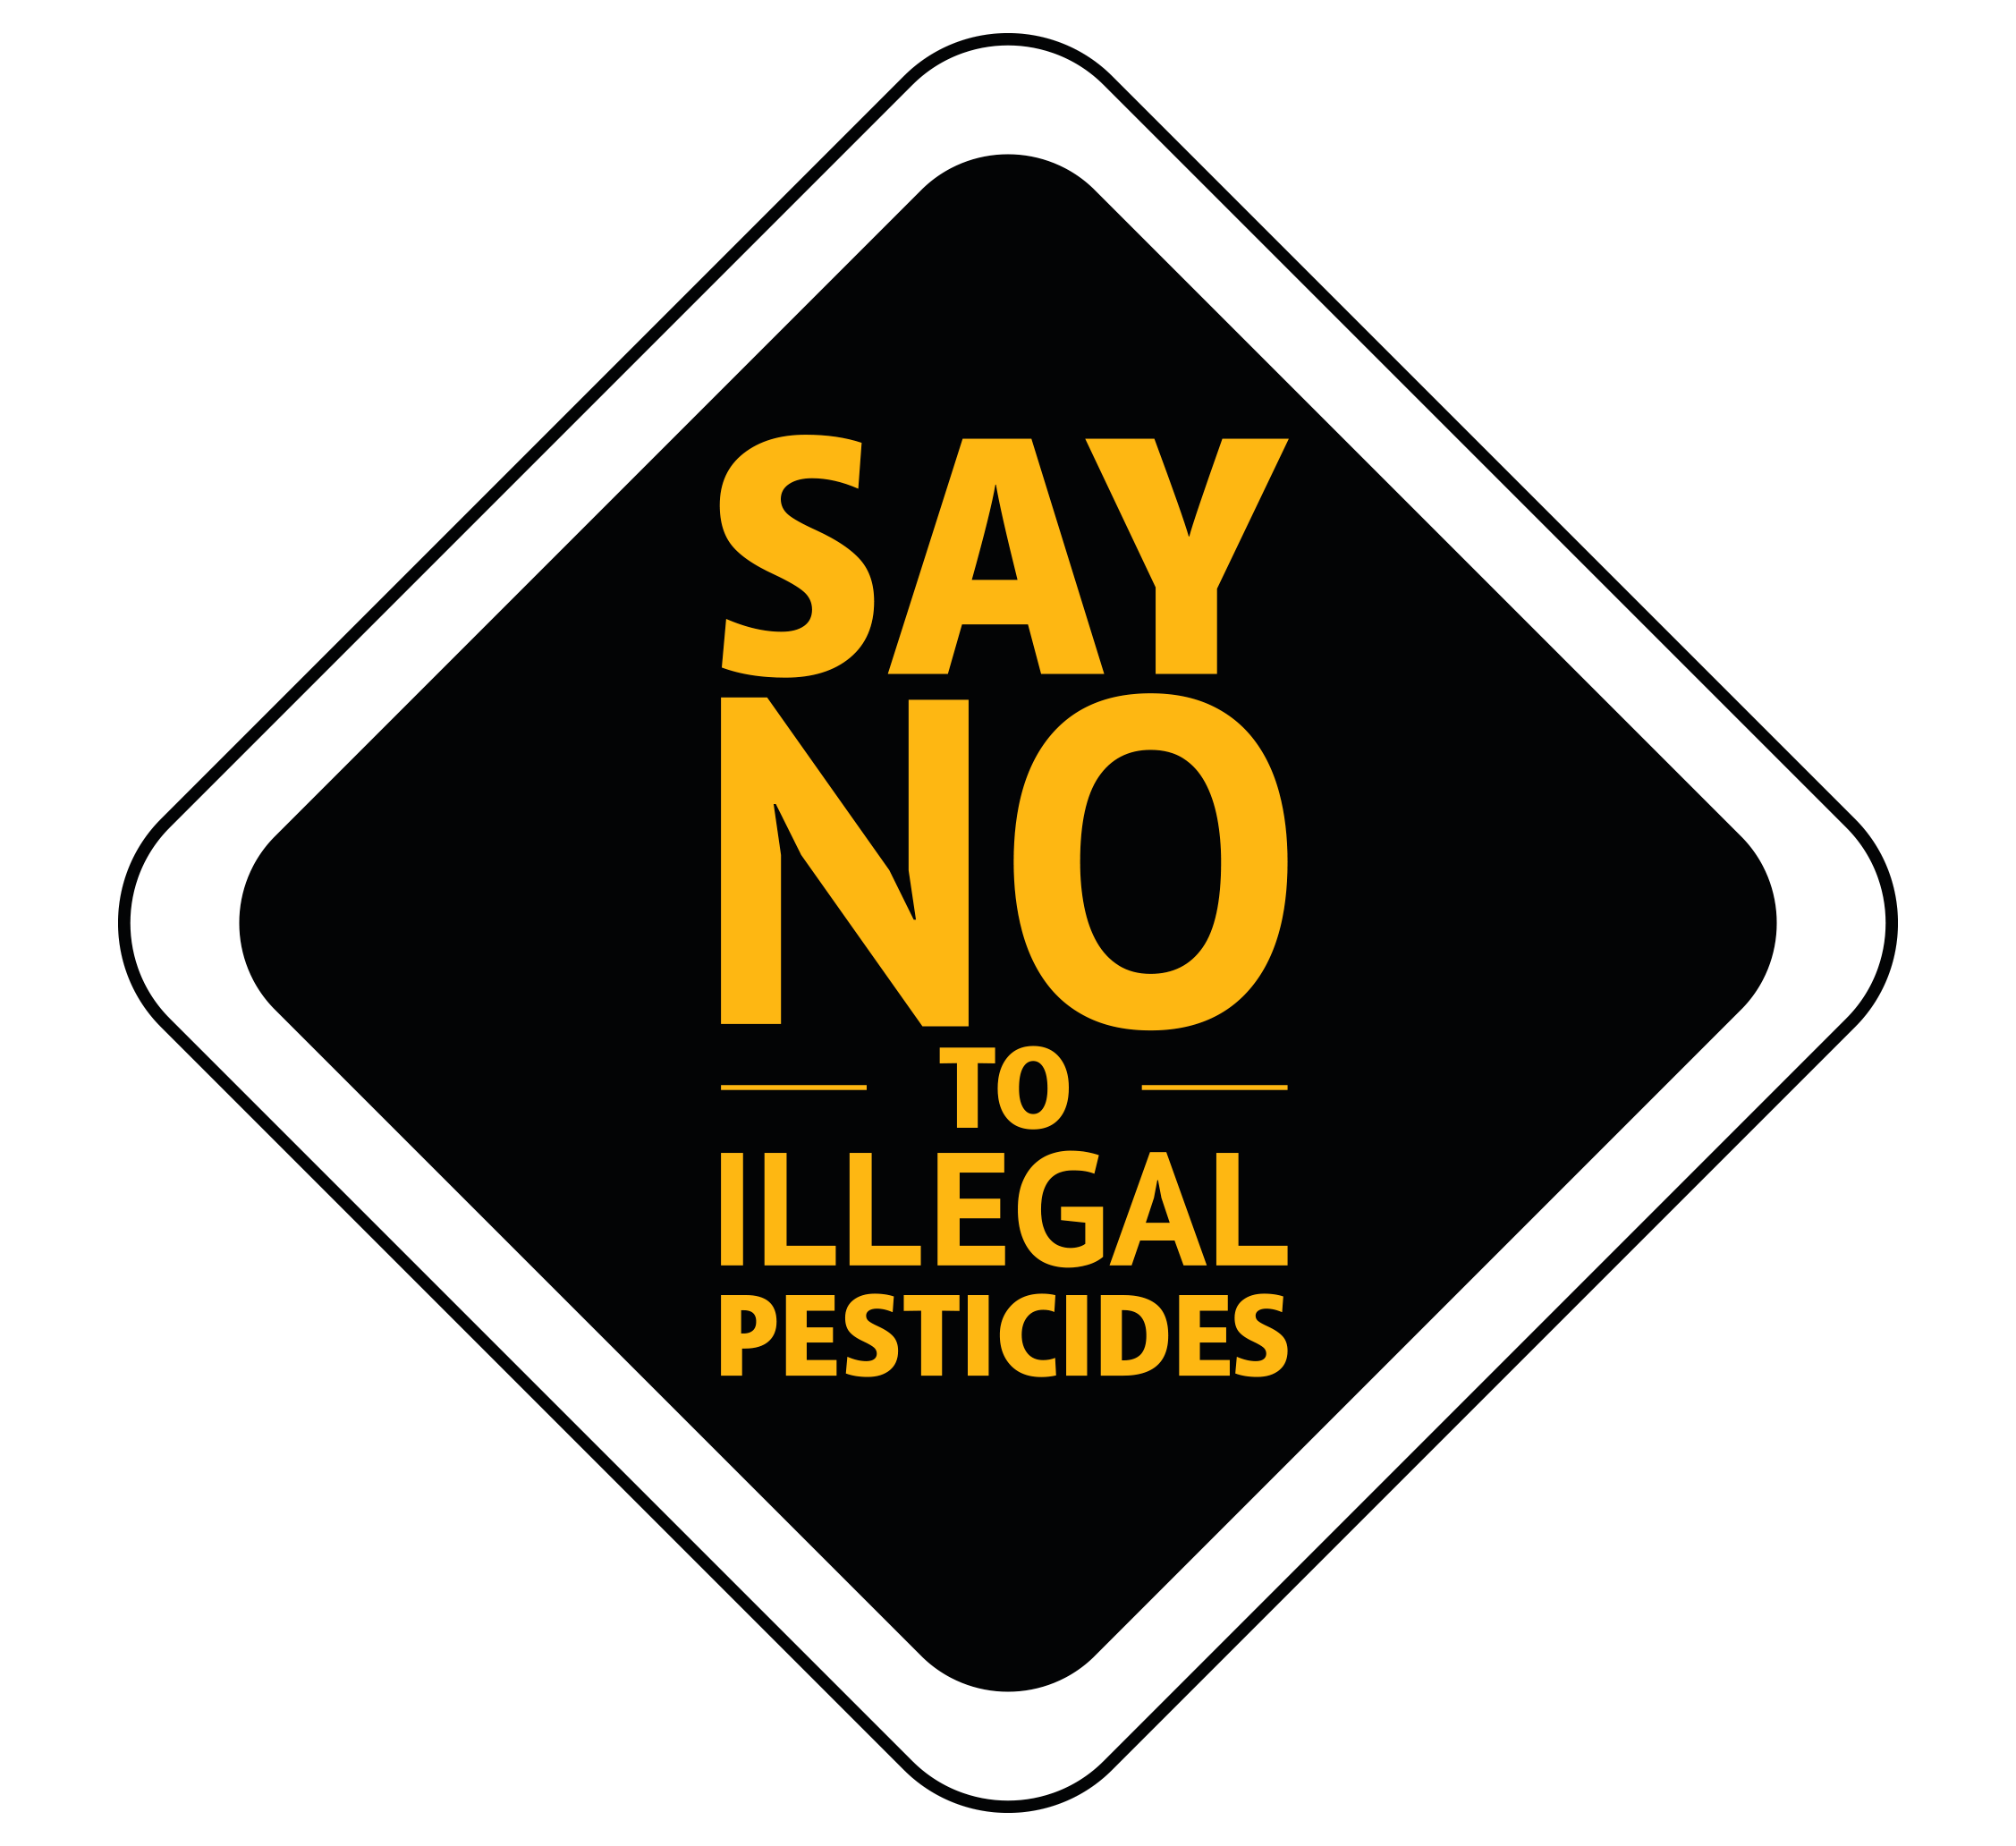 Say no to illegal pesticides